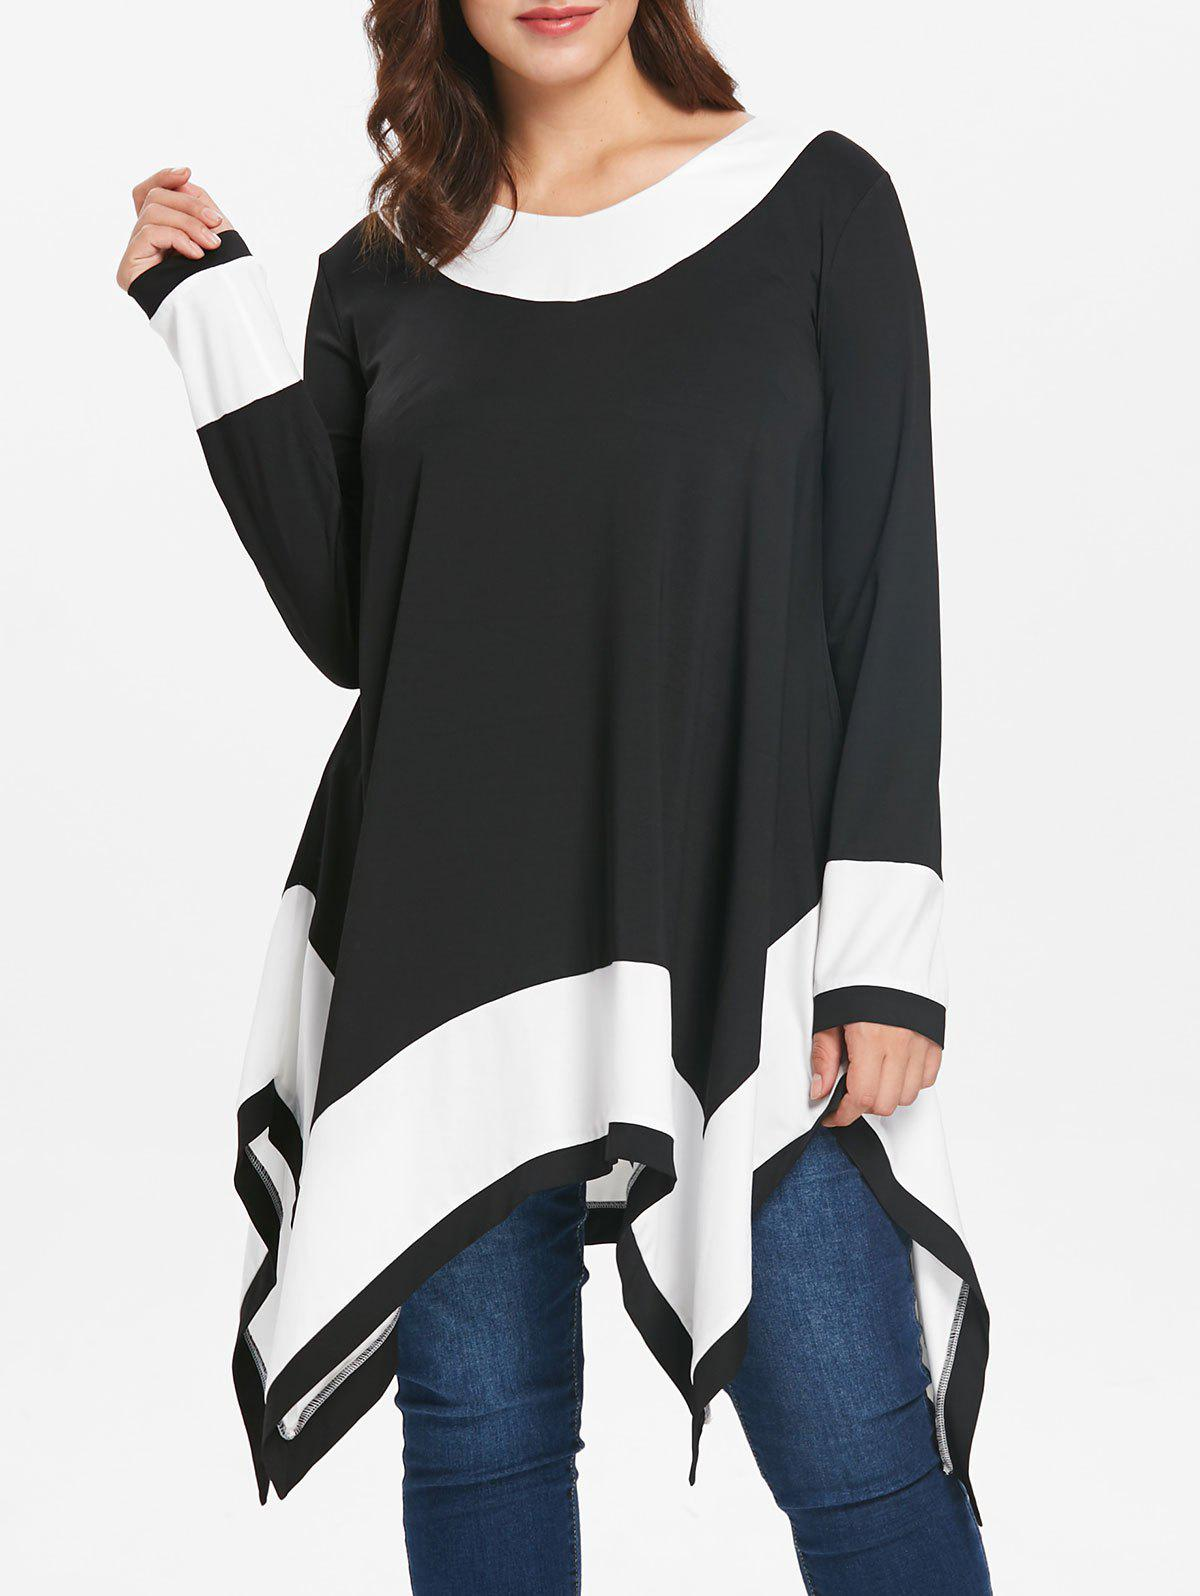 92320c46f6c 49% OFF] Plus Size Long Sleeve Handkerchief Tunic Top | Rosegal